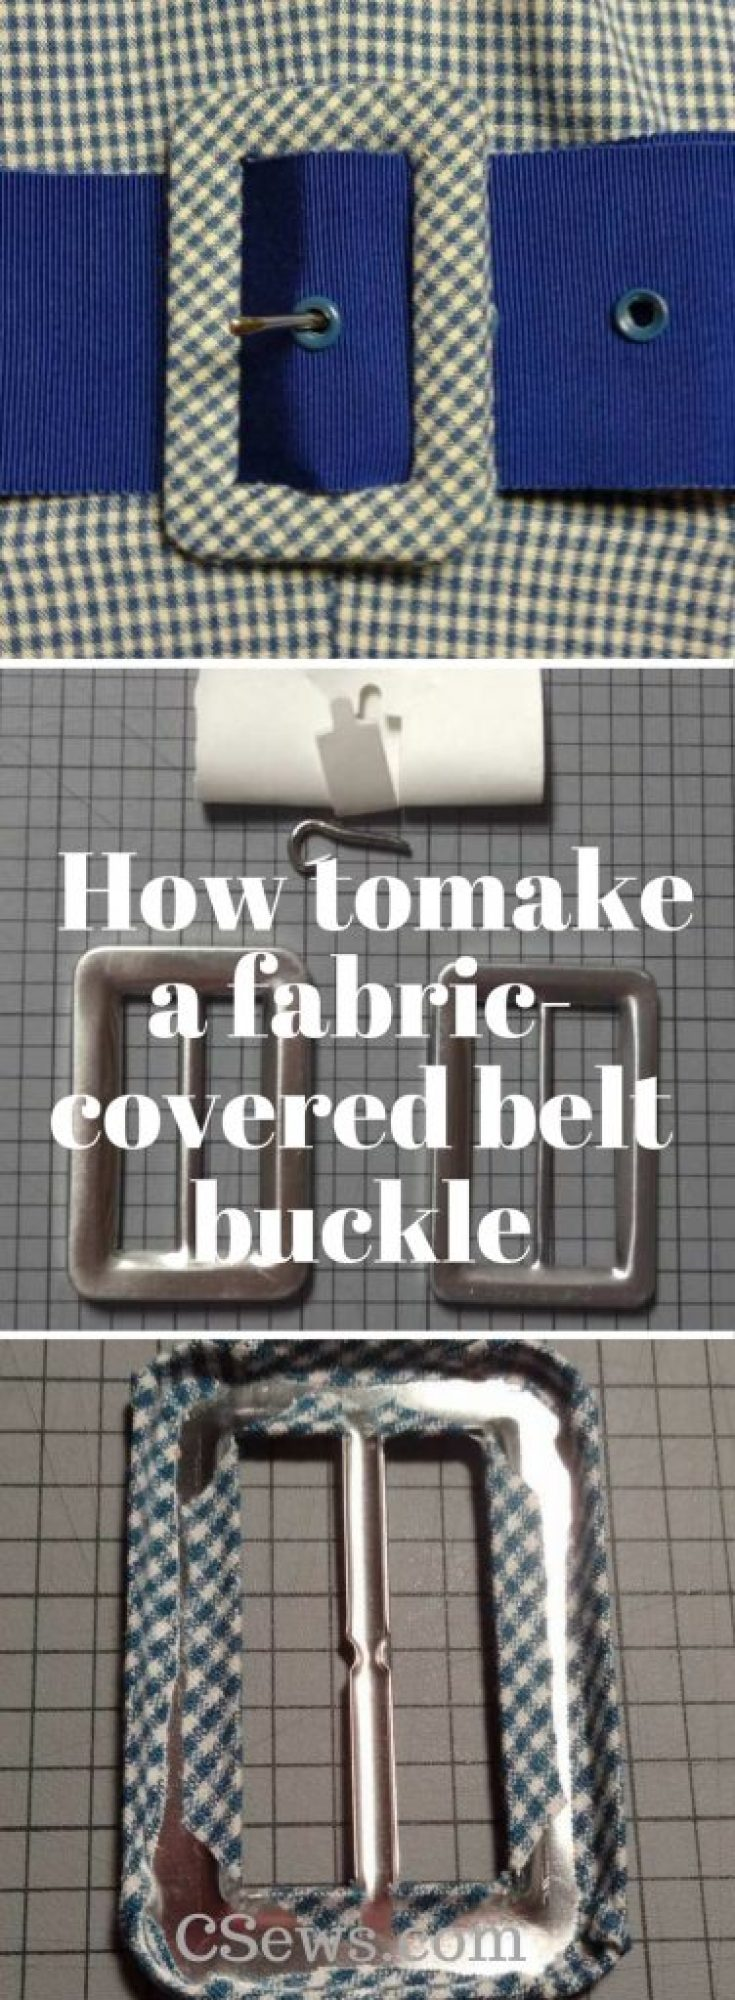 How to make a fabric-covered belt buckle - Maxant buckle kit